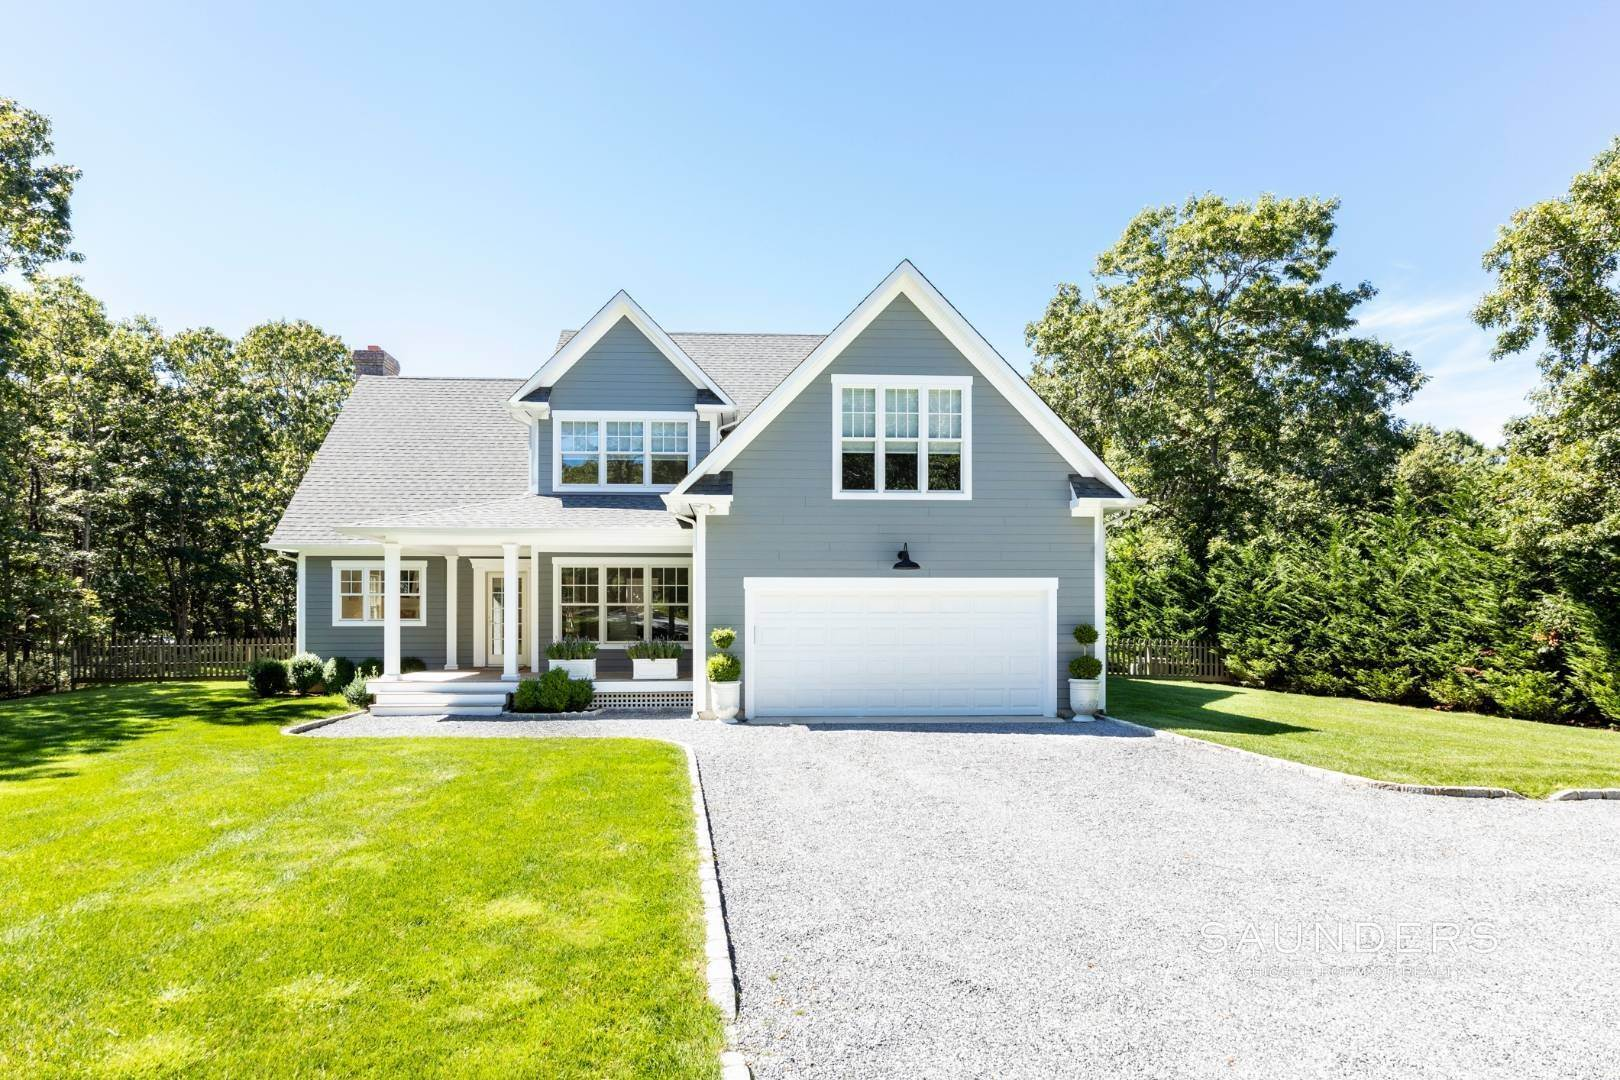 2. Single Family Homes for Sale at Pristine Traditional Home With Modern Amenities 11 Birdie Lane, East Hampton, East Hampton Town, NY 11937